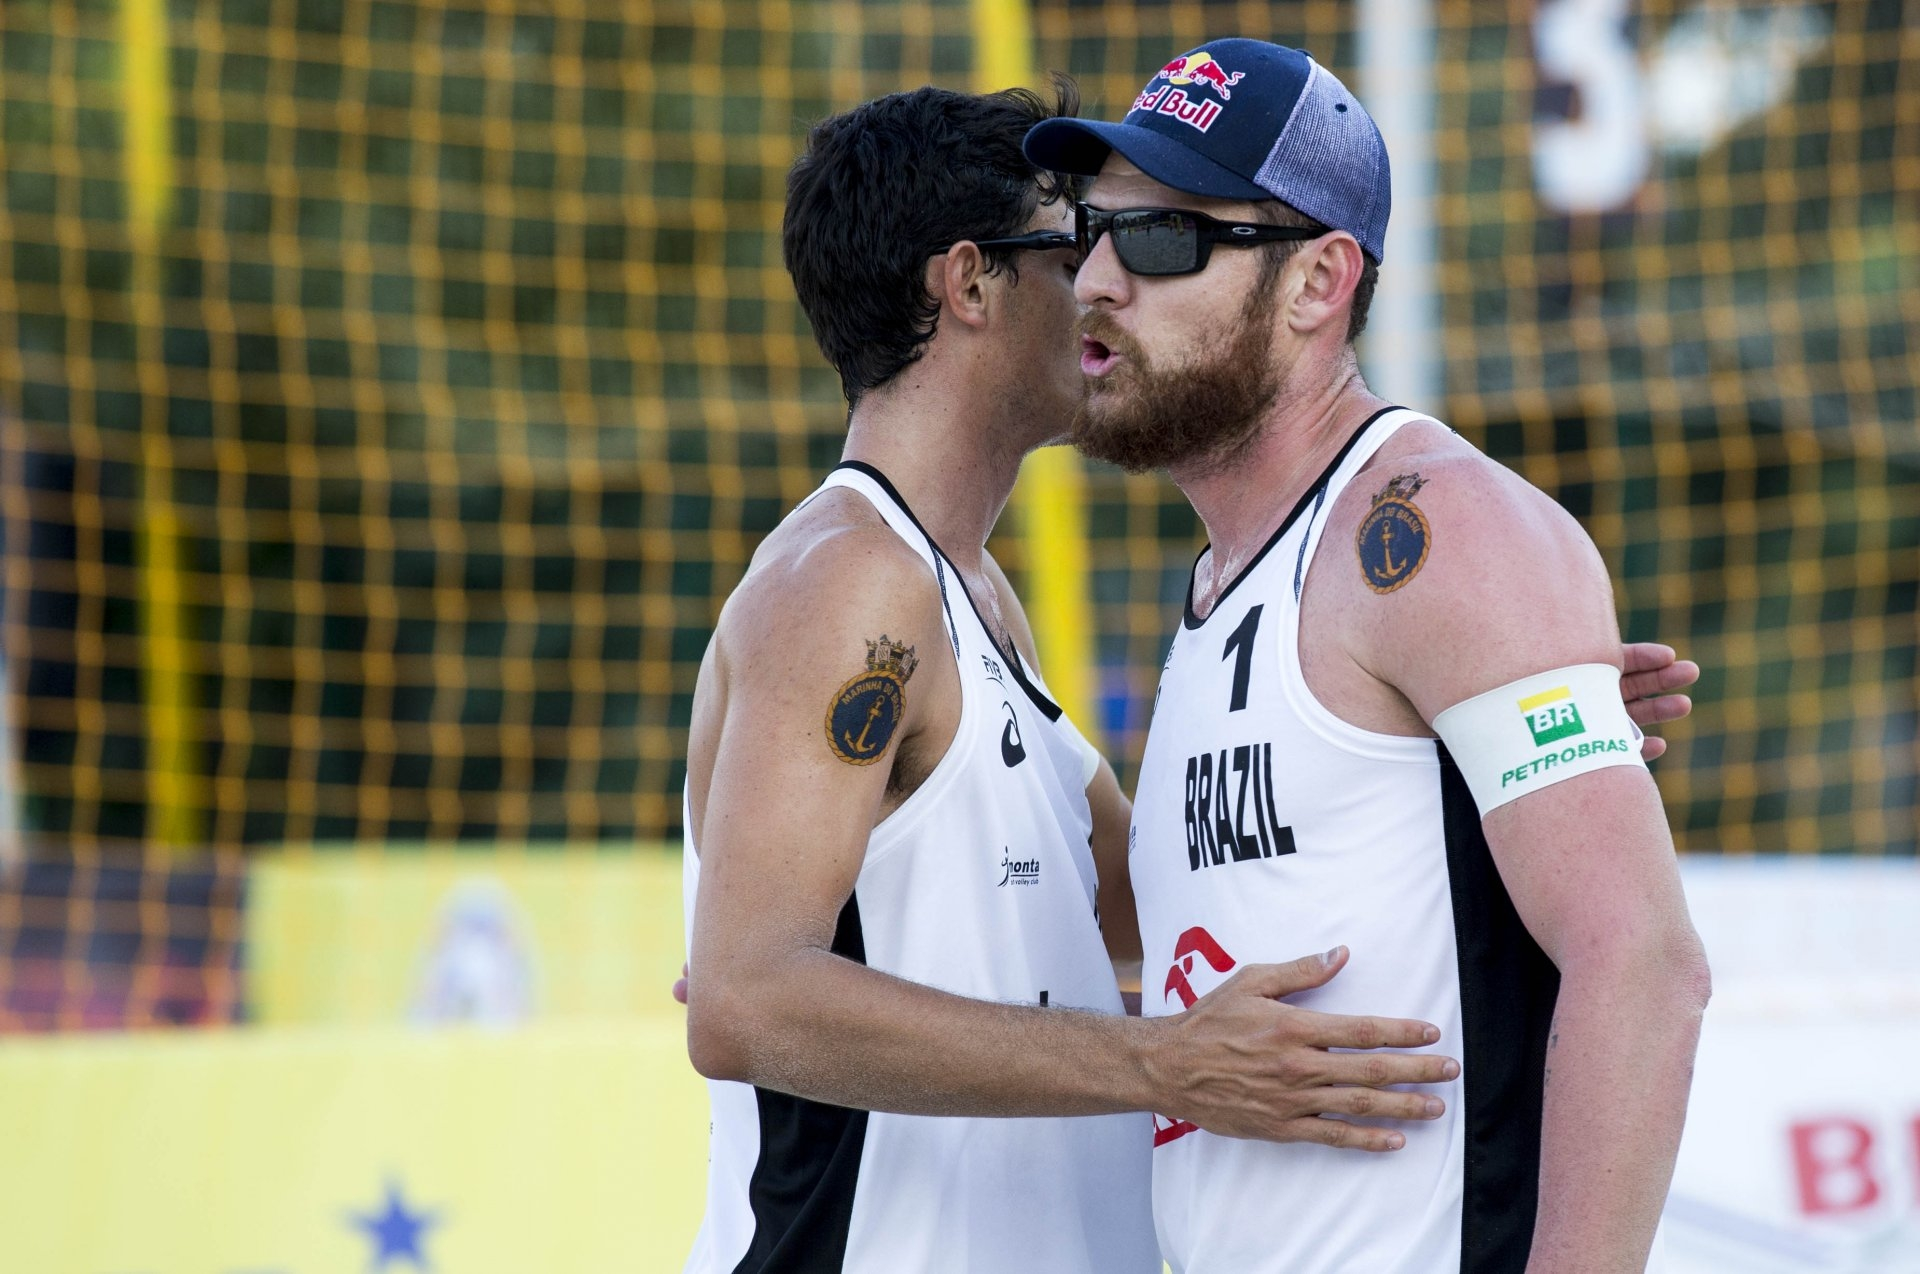 Alison and Andre celebrate their victory over Bruno and Pedro in Warsaw (Photocredit: FIVB)